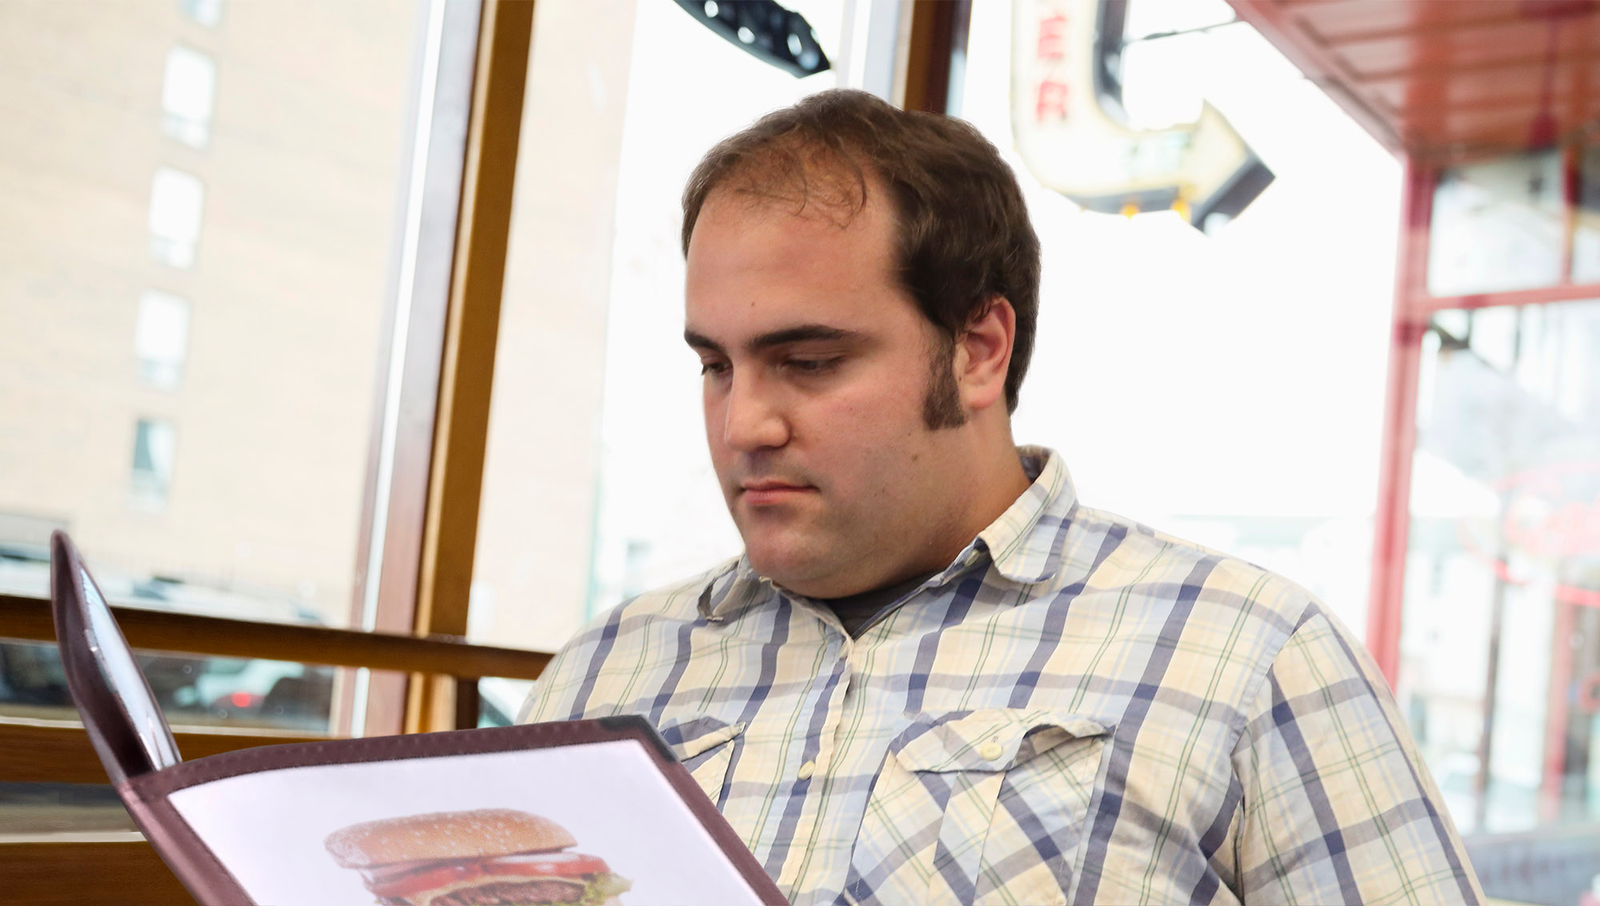 Backup Plan In Case Menu Item Out Of Stock Most Well-Thought-Out Part Of Man's Life